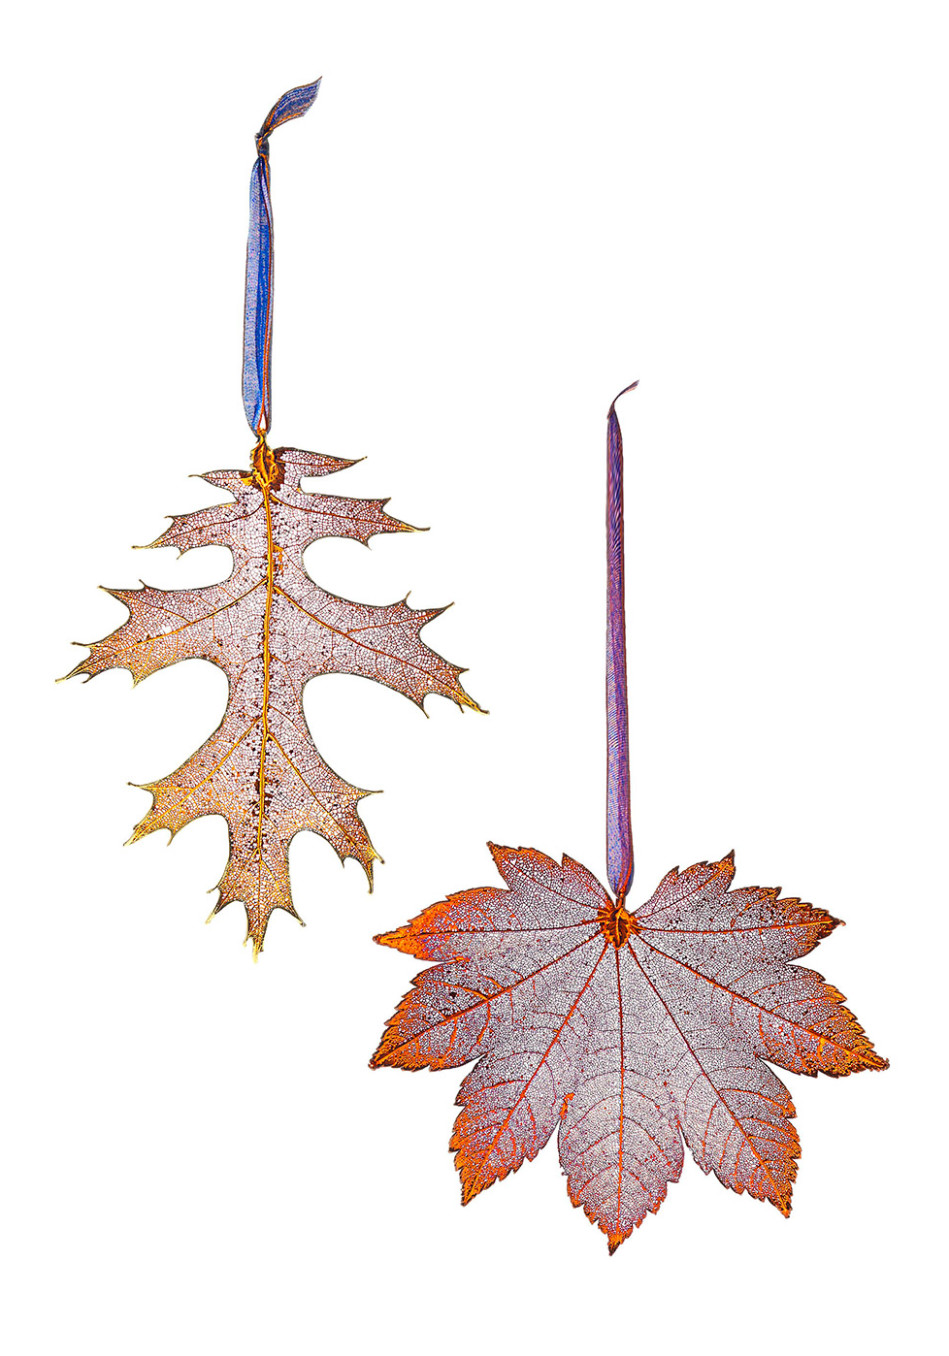 Leaf Ornaments Preserved in Gold, Silver or Copper